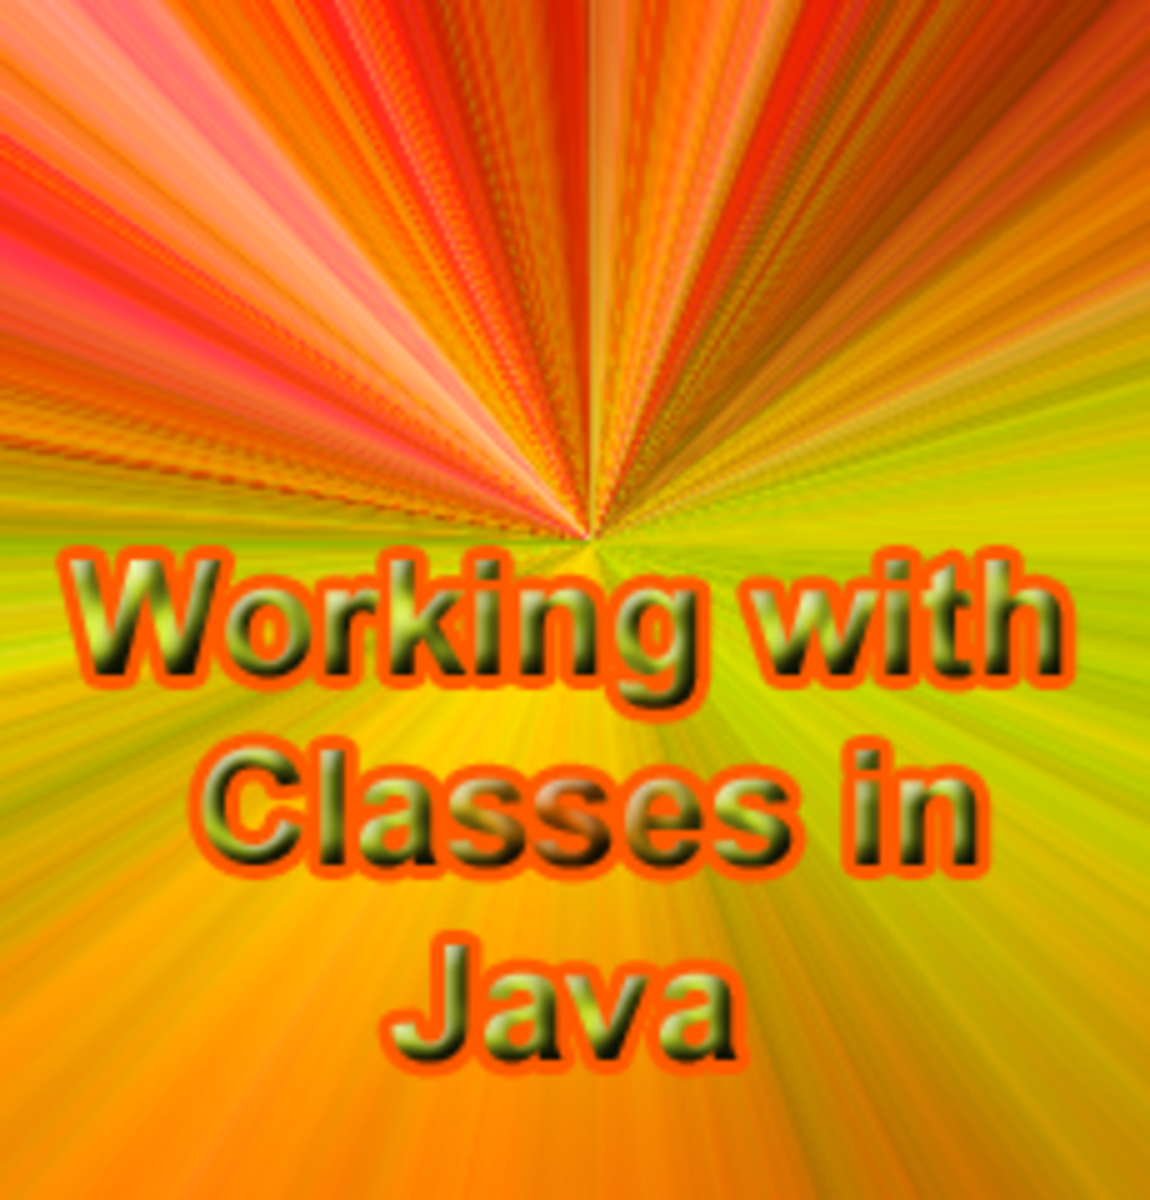 Programming in Java Netbeans - A Step by Step Tutorial for Beginners: Lesson 27